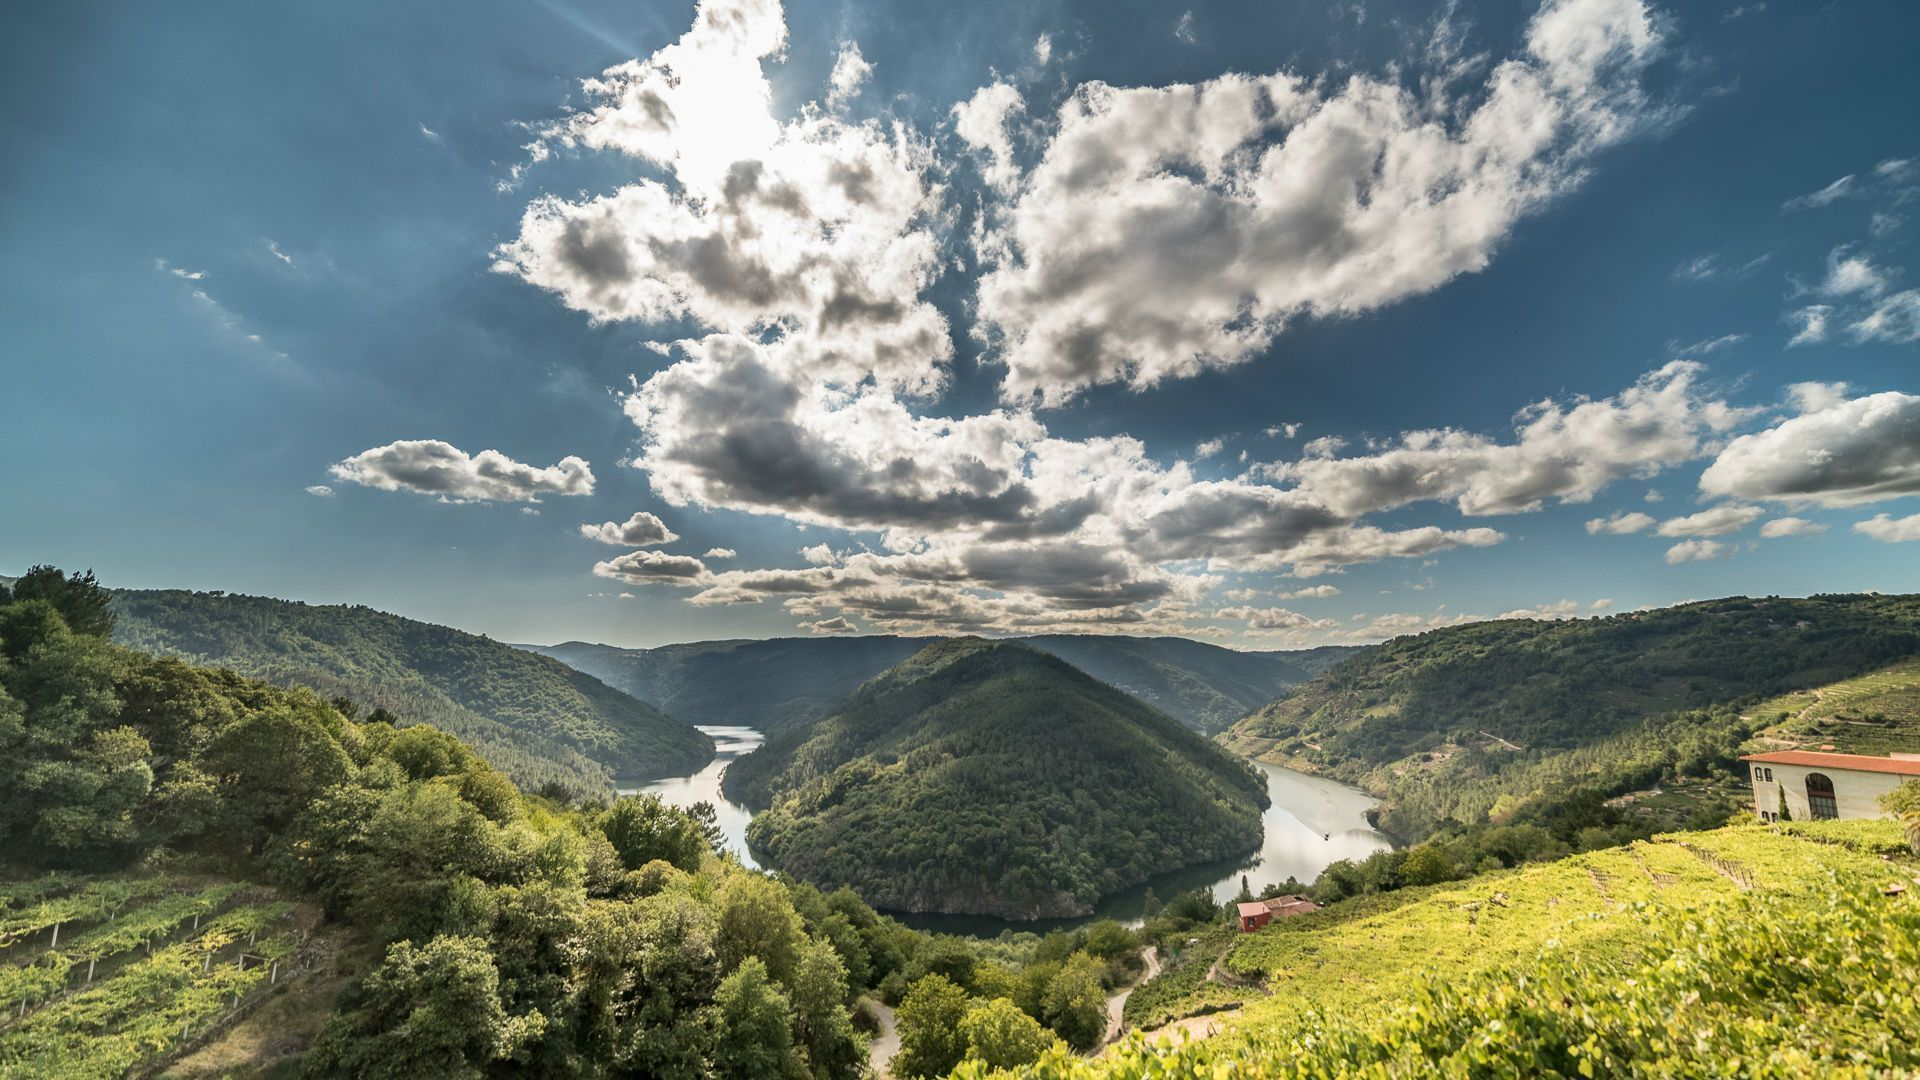 A bend in the Rio Sil in Ribeira Sacra